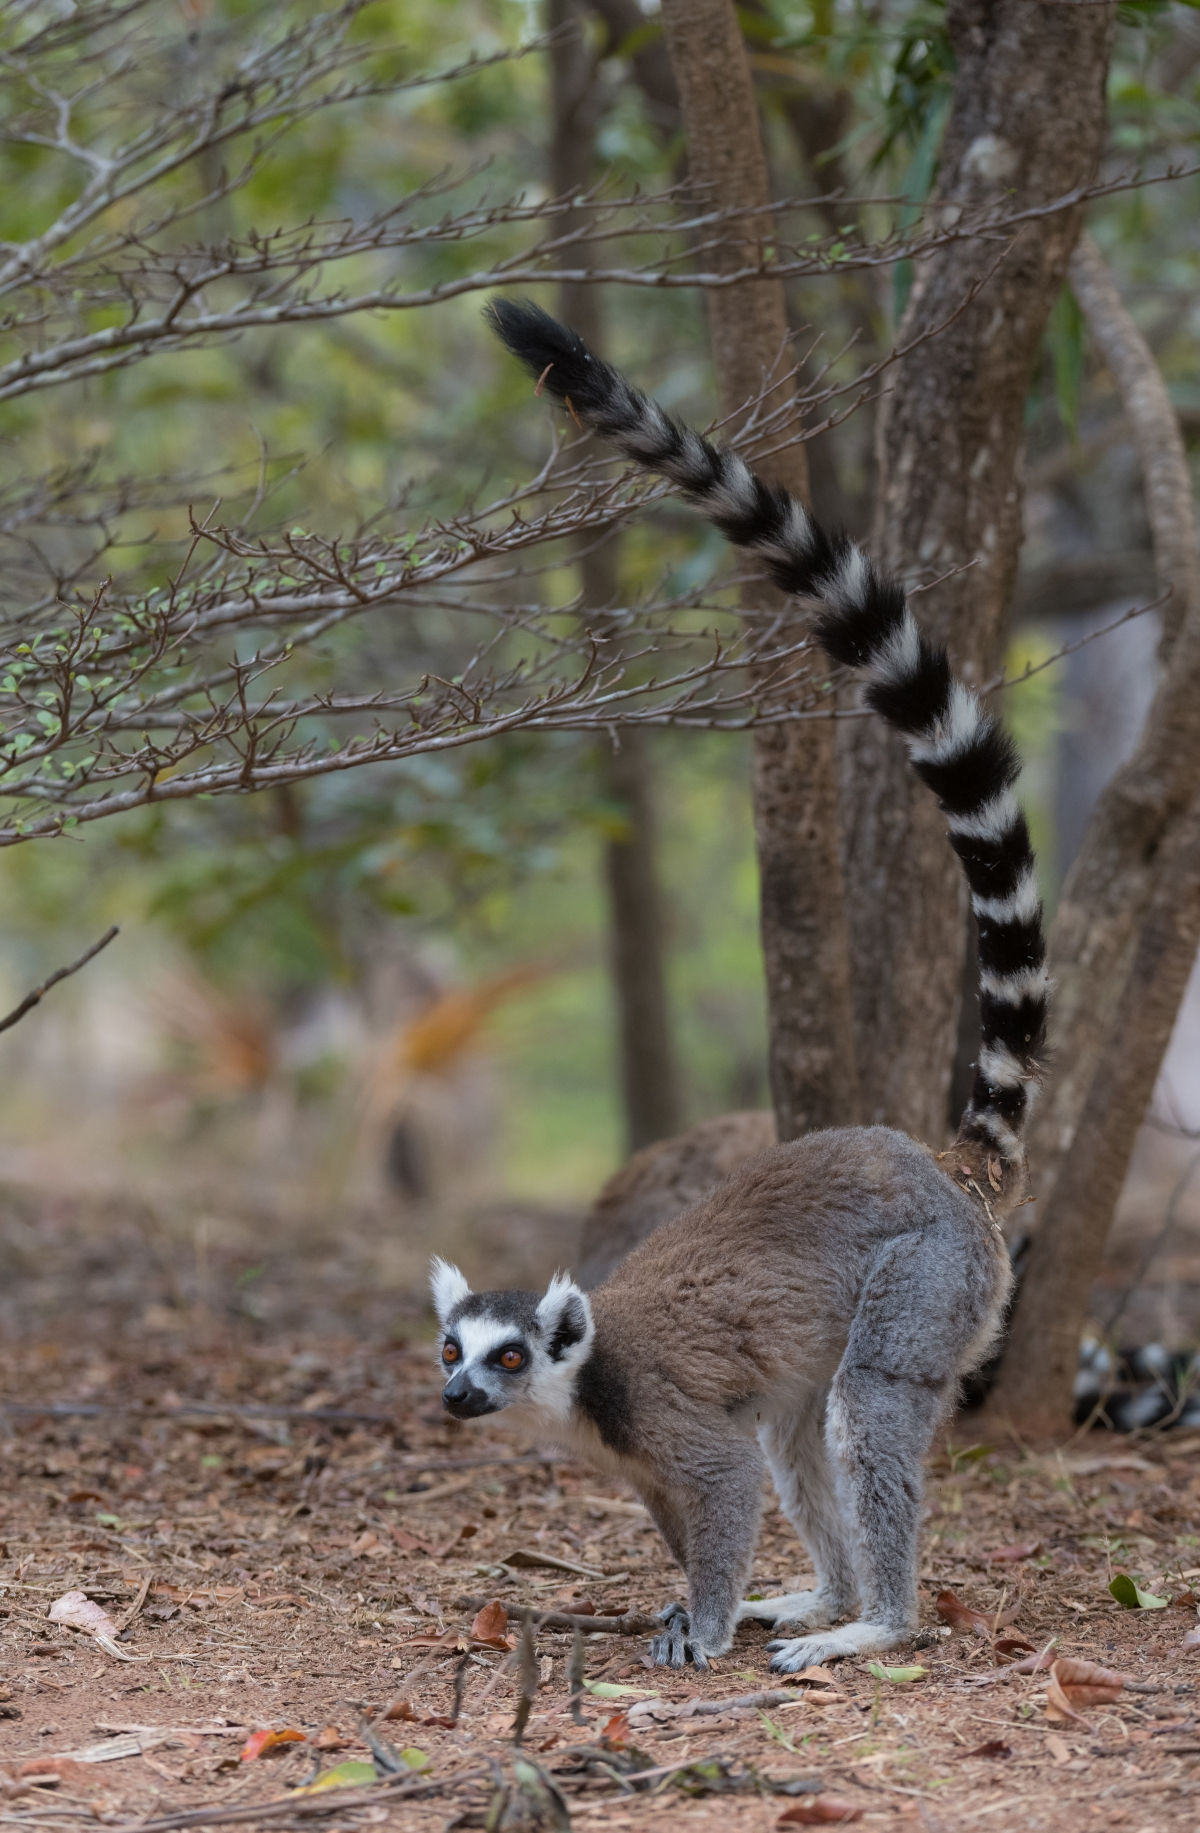 Our Madagascar birding, wildlife and photography tours offer the best experience for the all-round naturalist. We focus on all the natural wonders that this magnificent island has to offer from plants and fungi to reptiles and amphibians to mammals and birds. The Ring-tailed lemurs are one of the many highlights on this tour